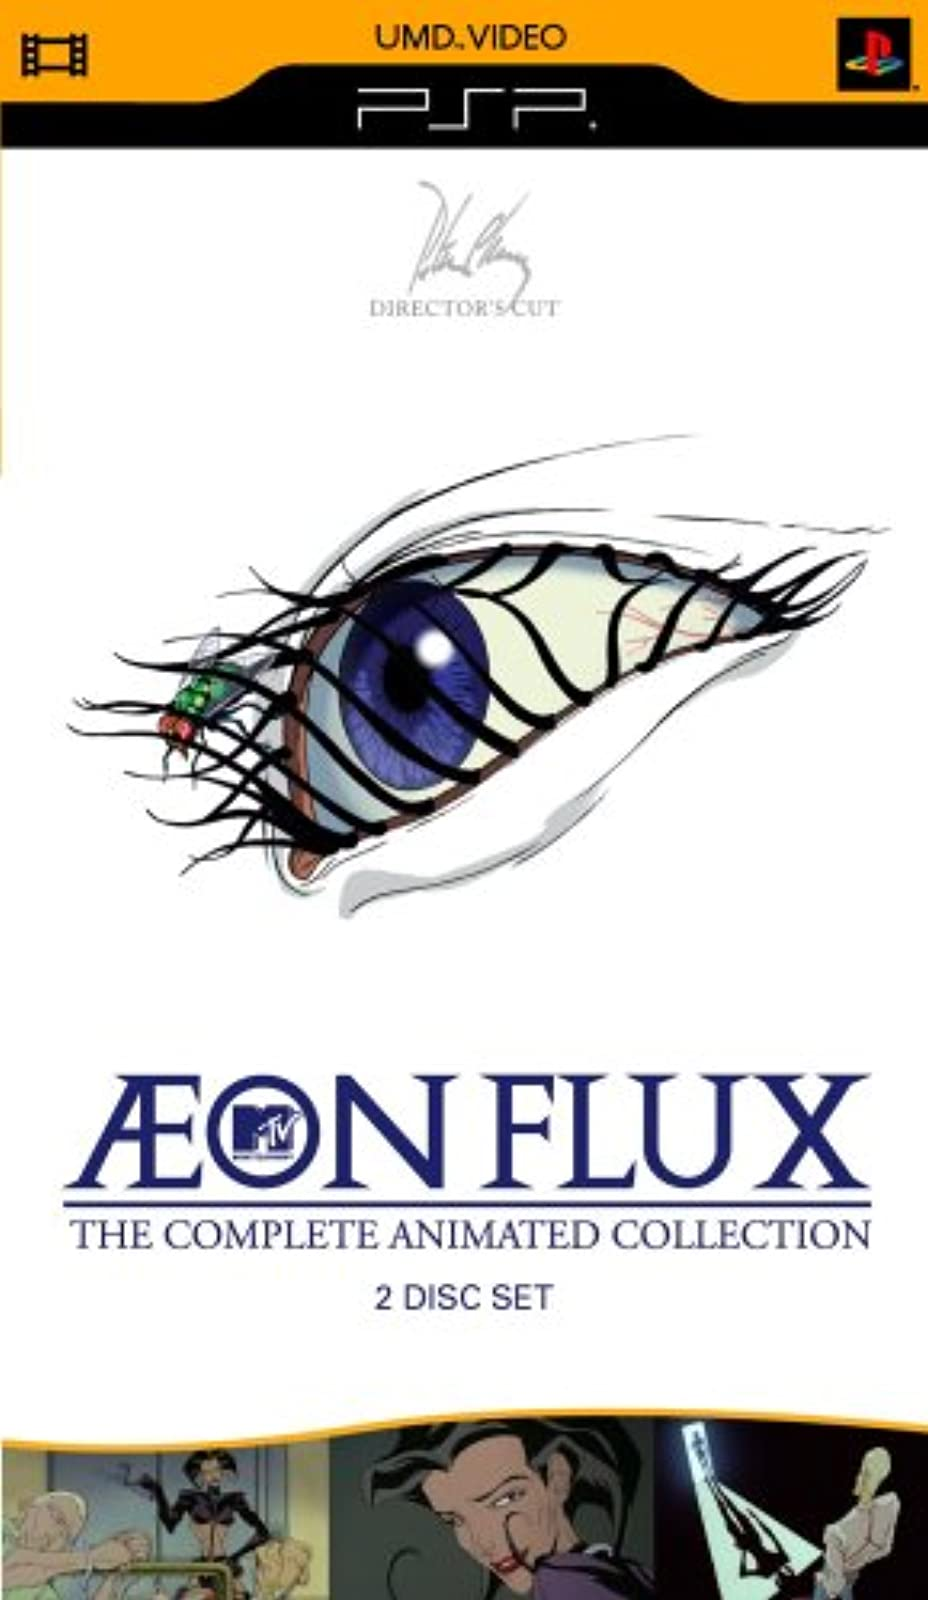 Aeon Flux: The Complete Animated Collection 2 Disc Set For PSP UMD